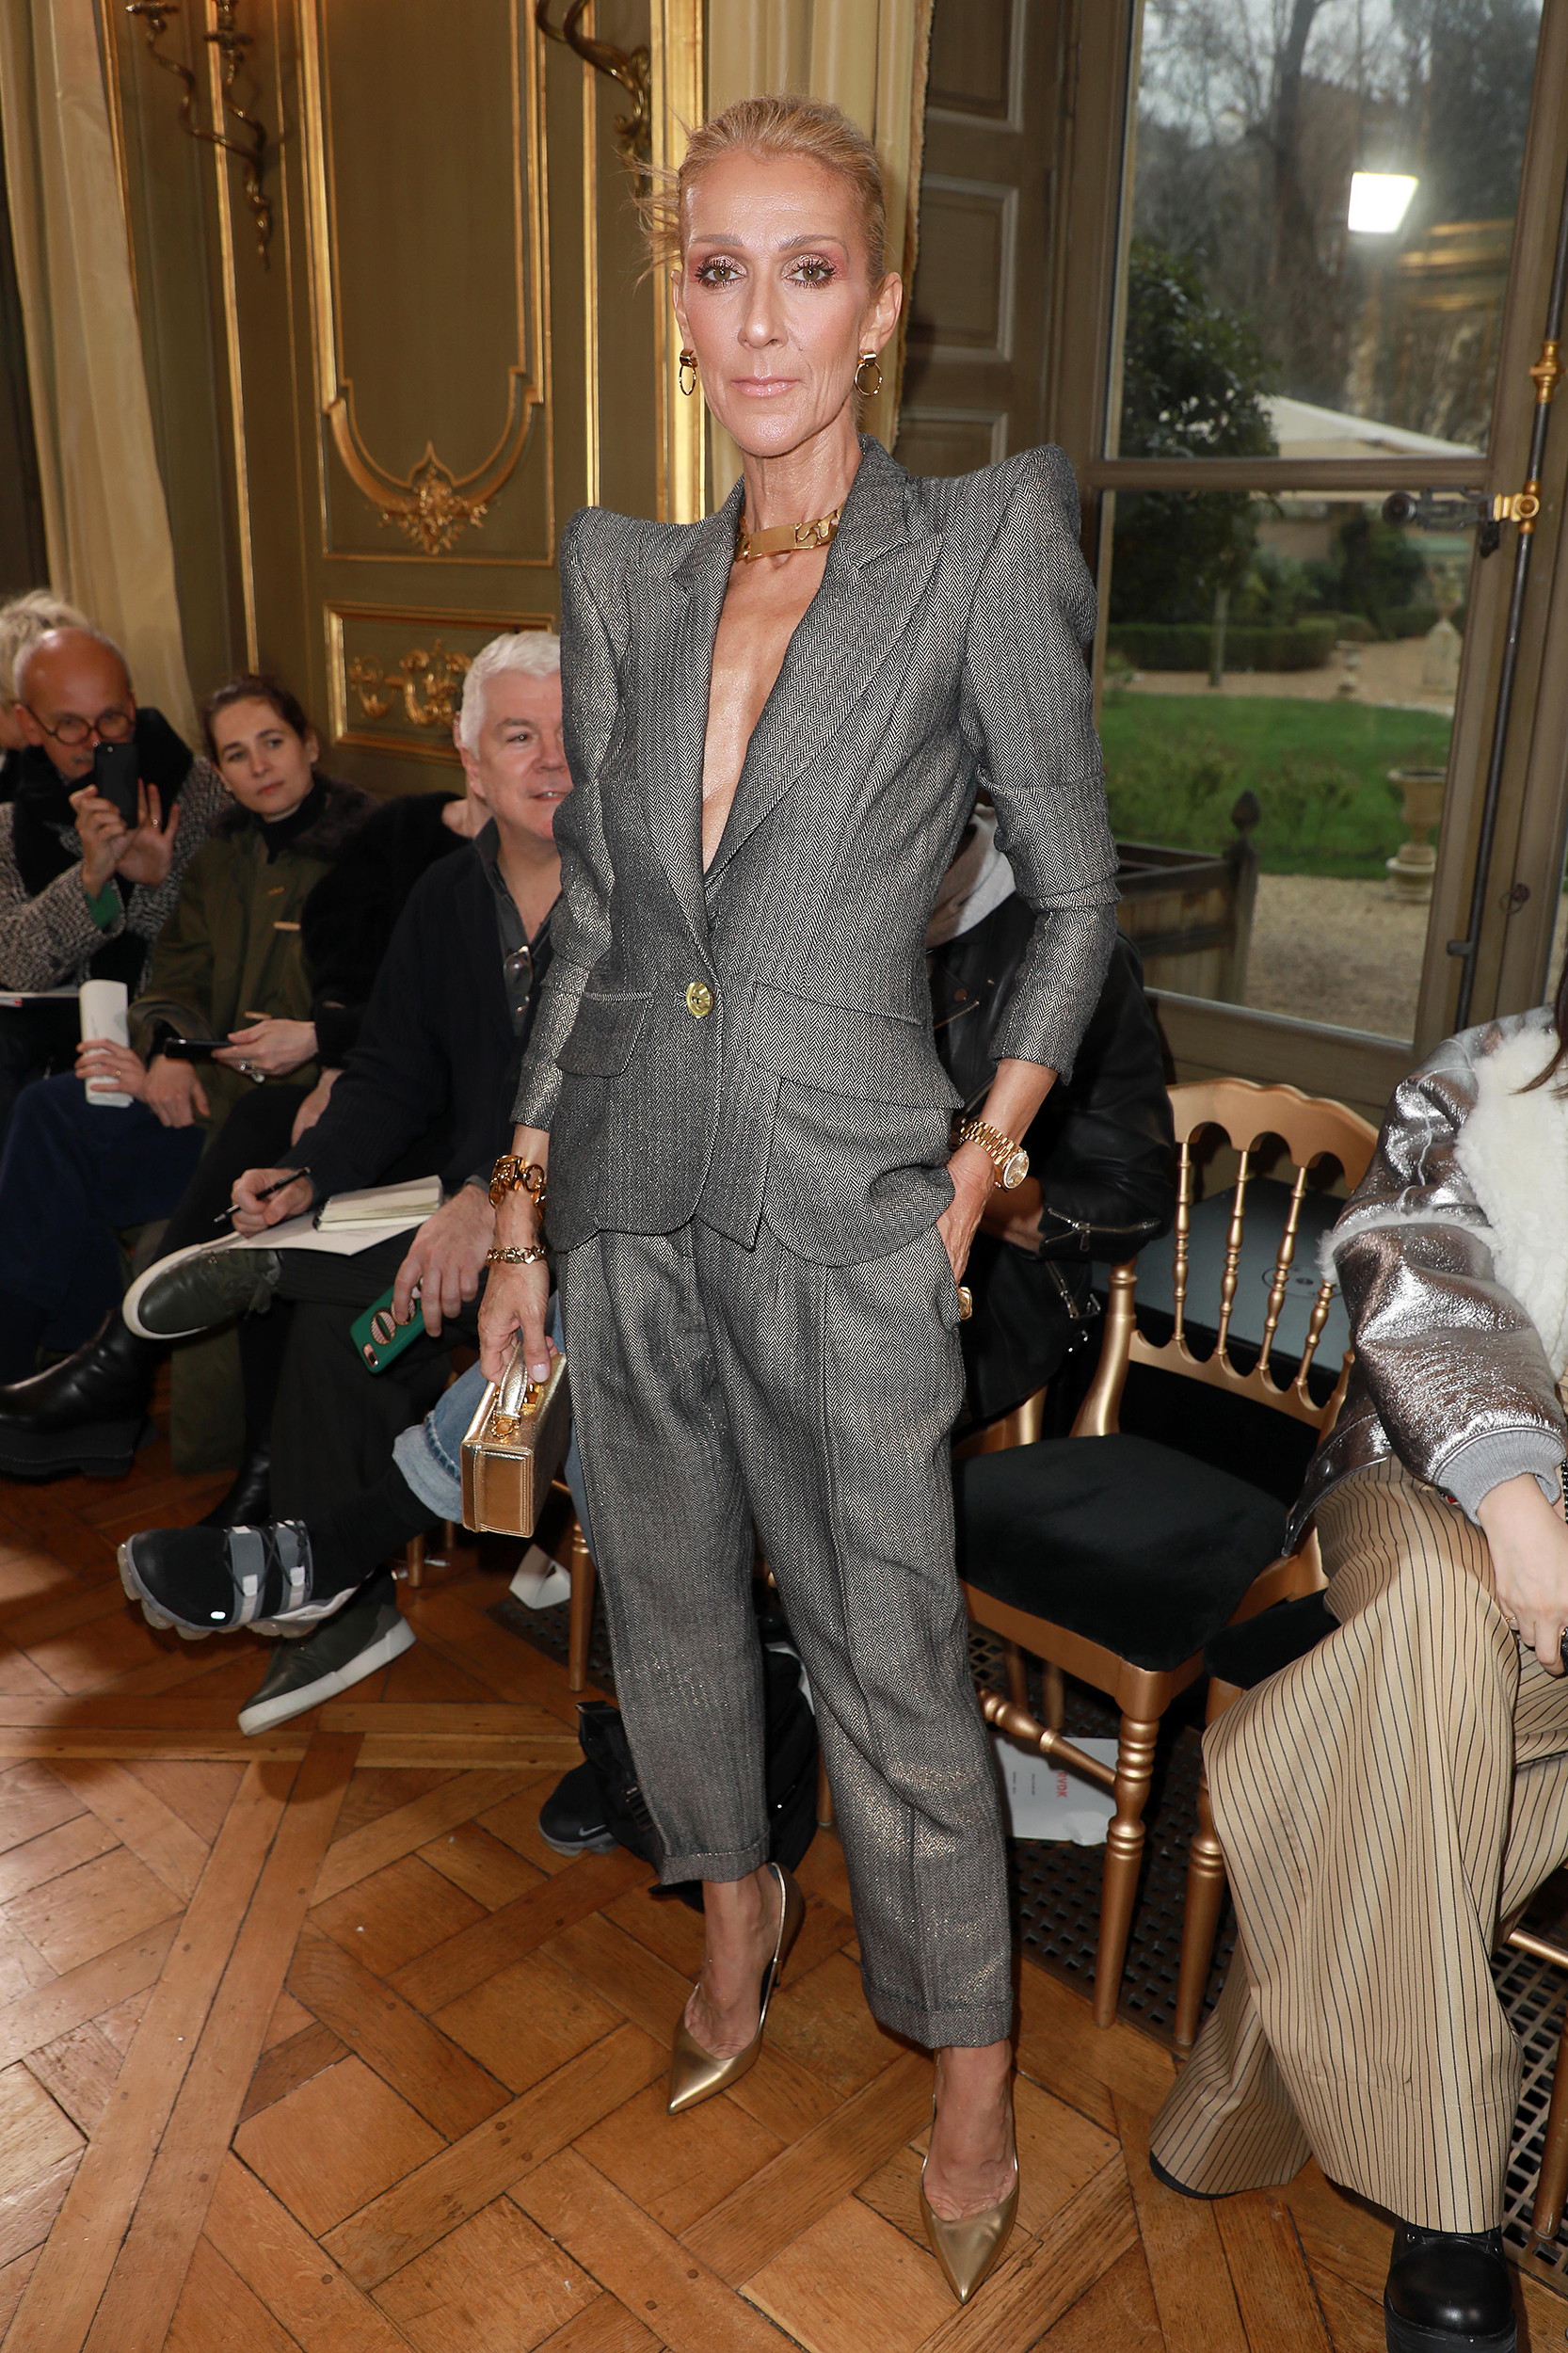 Celine Dion S Weight Loss And Health Why Has Celine Lost Weight